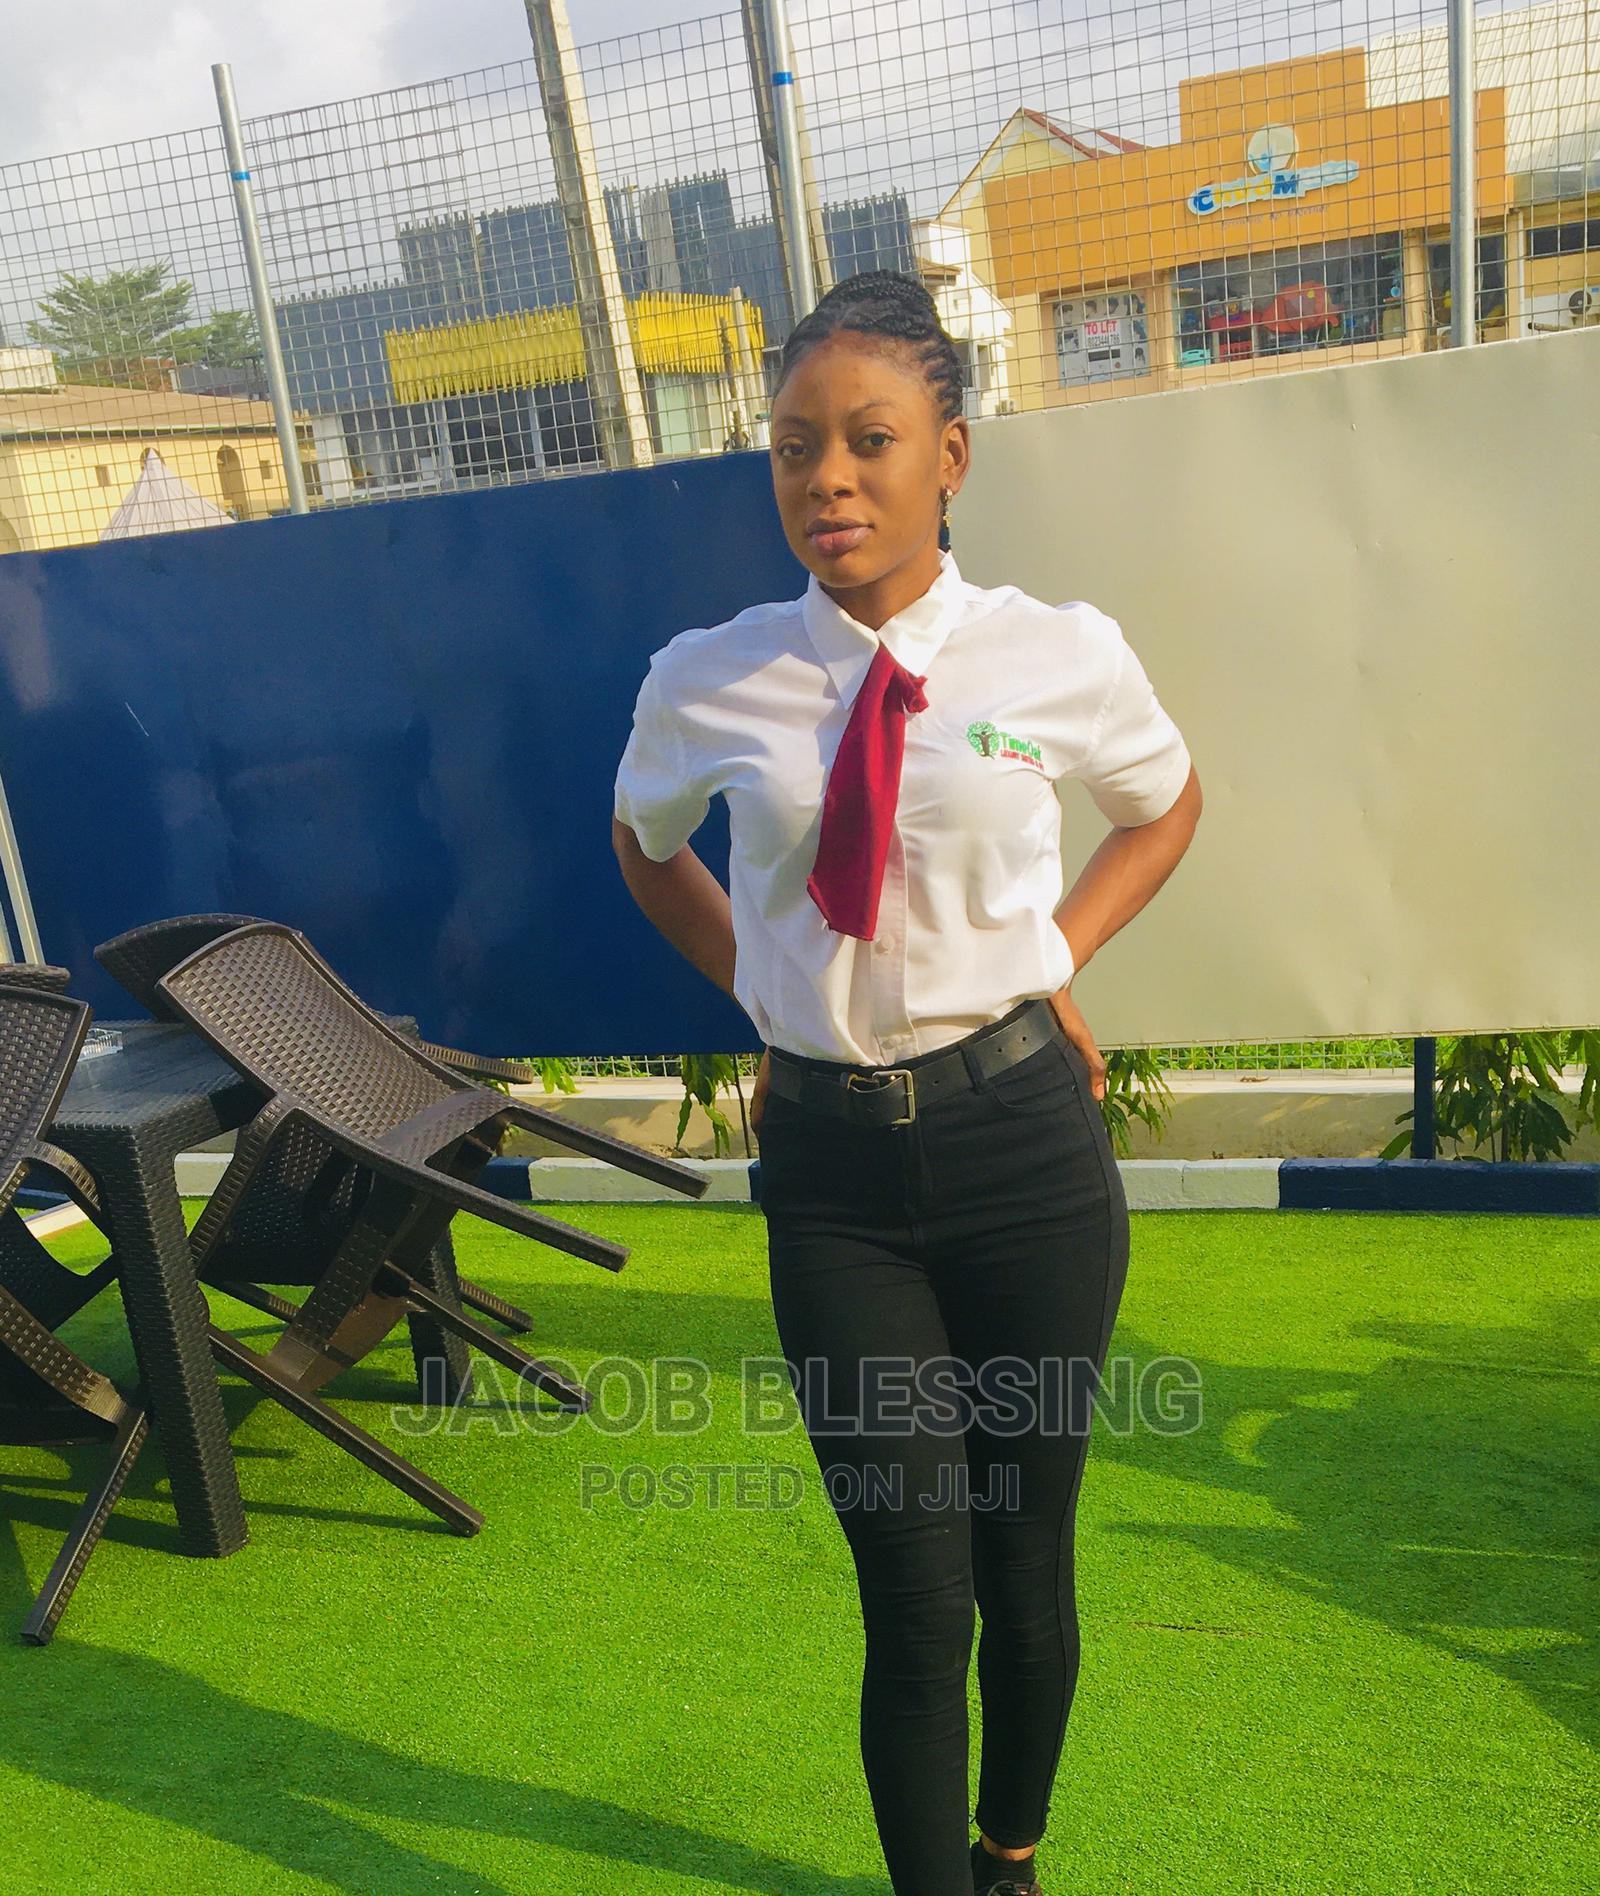 Receptionist or Waitress